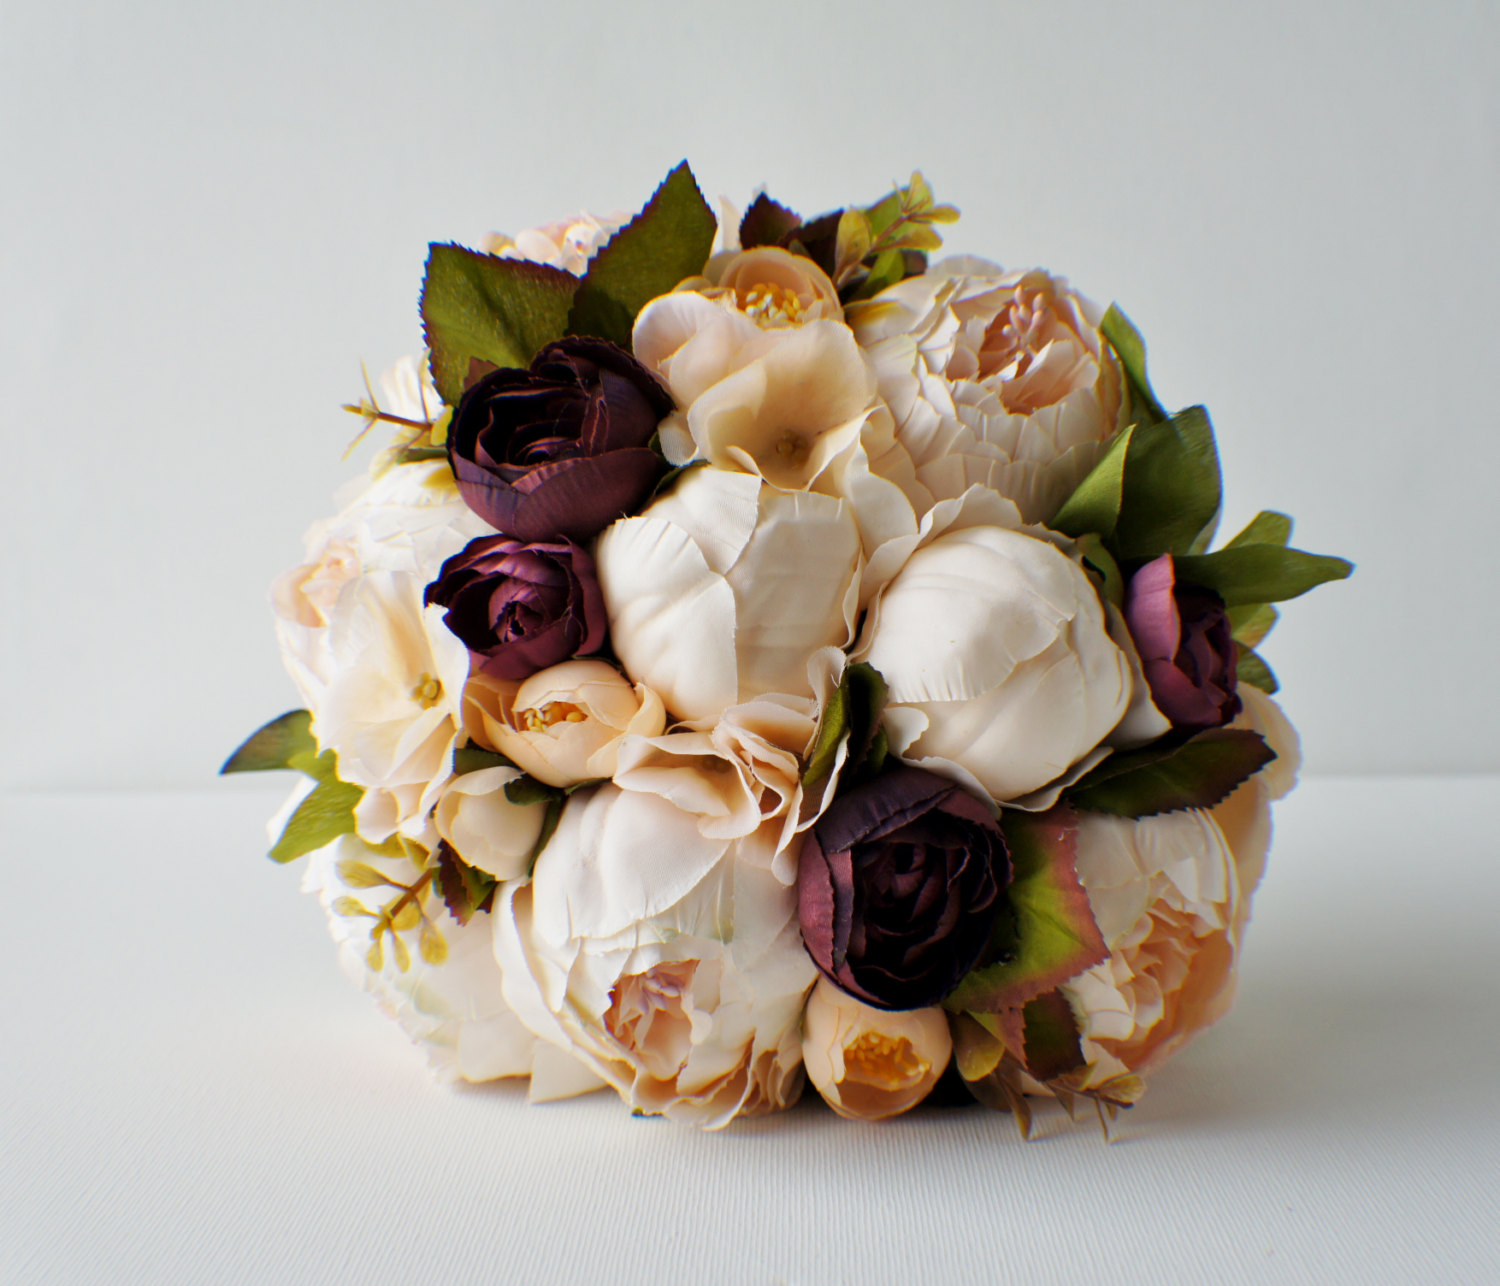 Wedding Flowers Bouquet Ideas: Wedding Bouquet Ideas Without Flowers